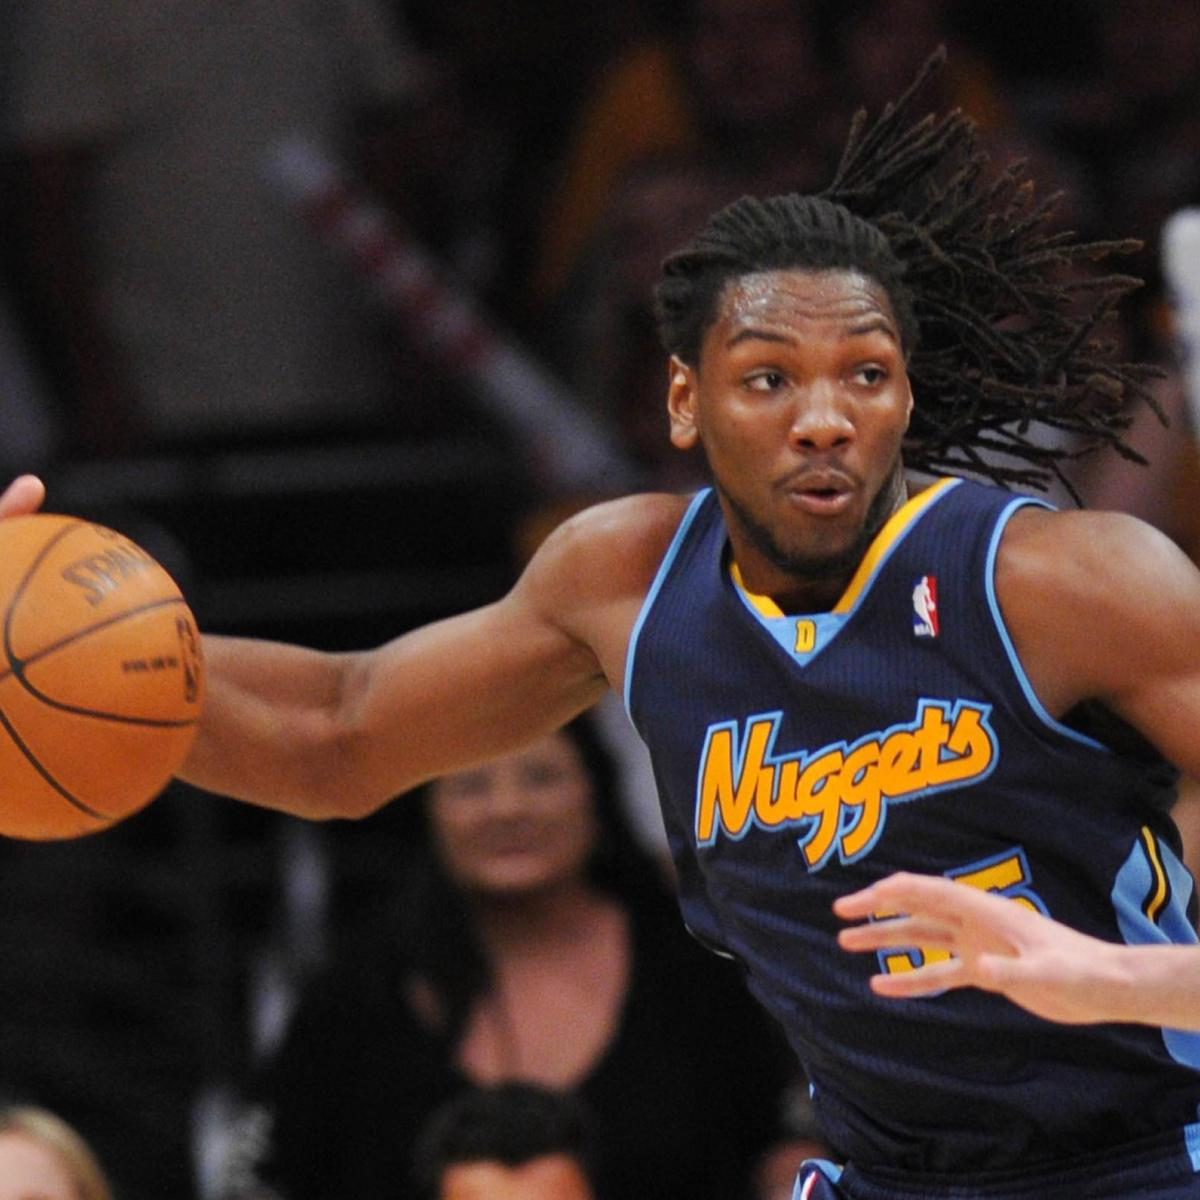 Denver News Uber Shooting: Why Kenneth Faried Is The Denver Nuggets' X-Factor For